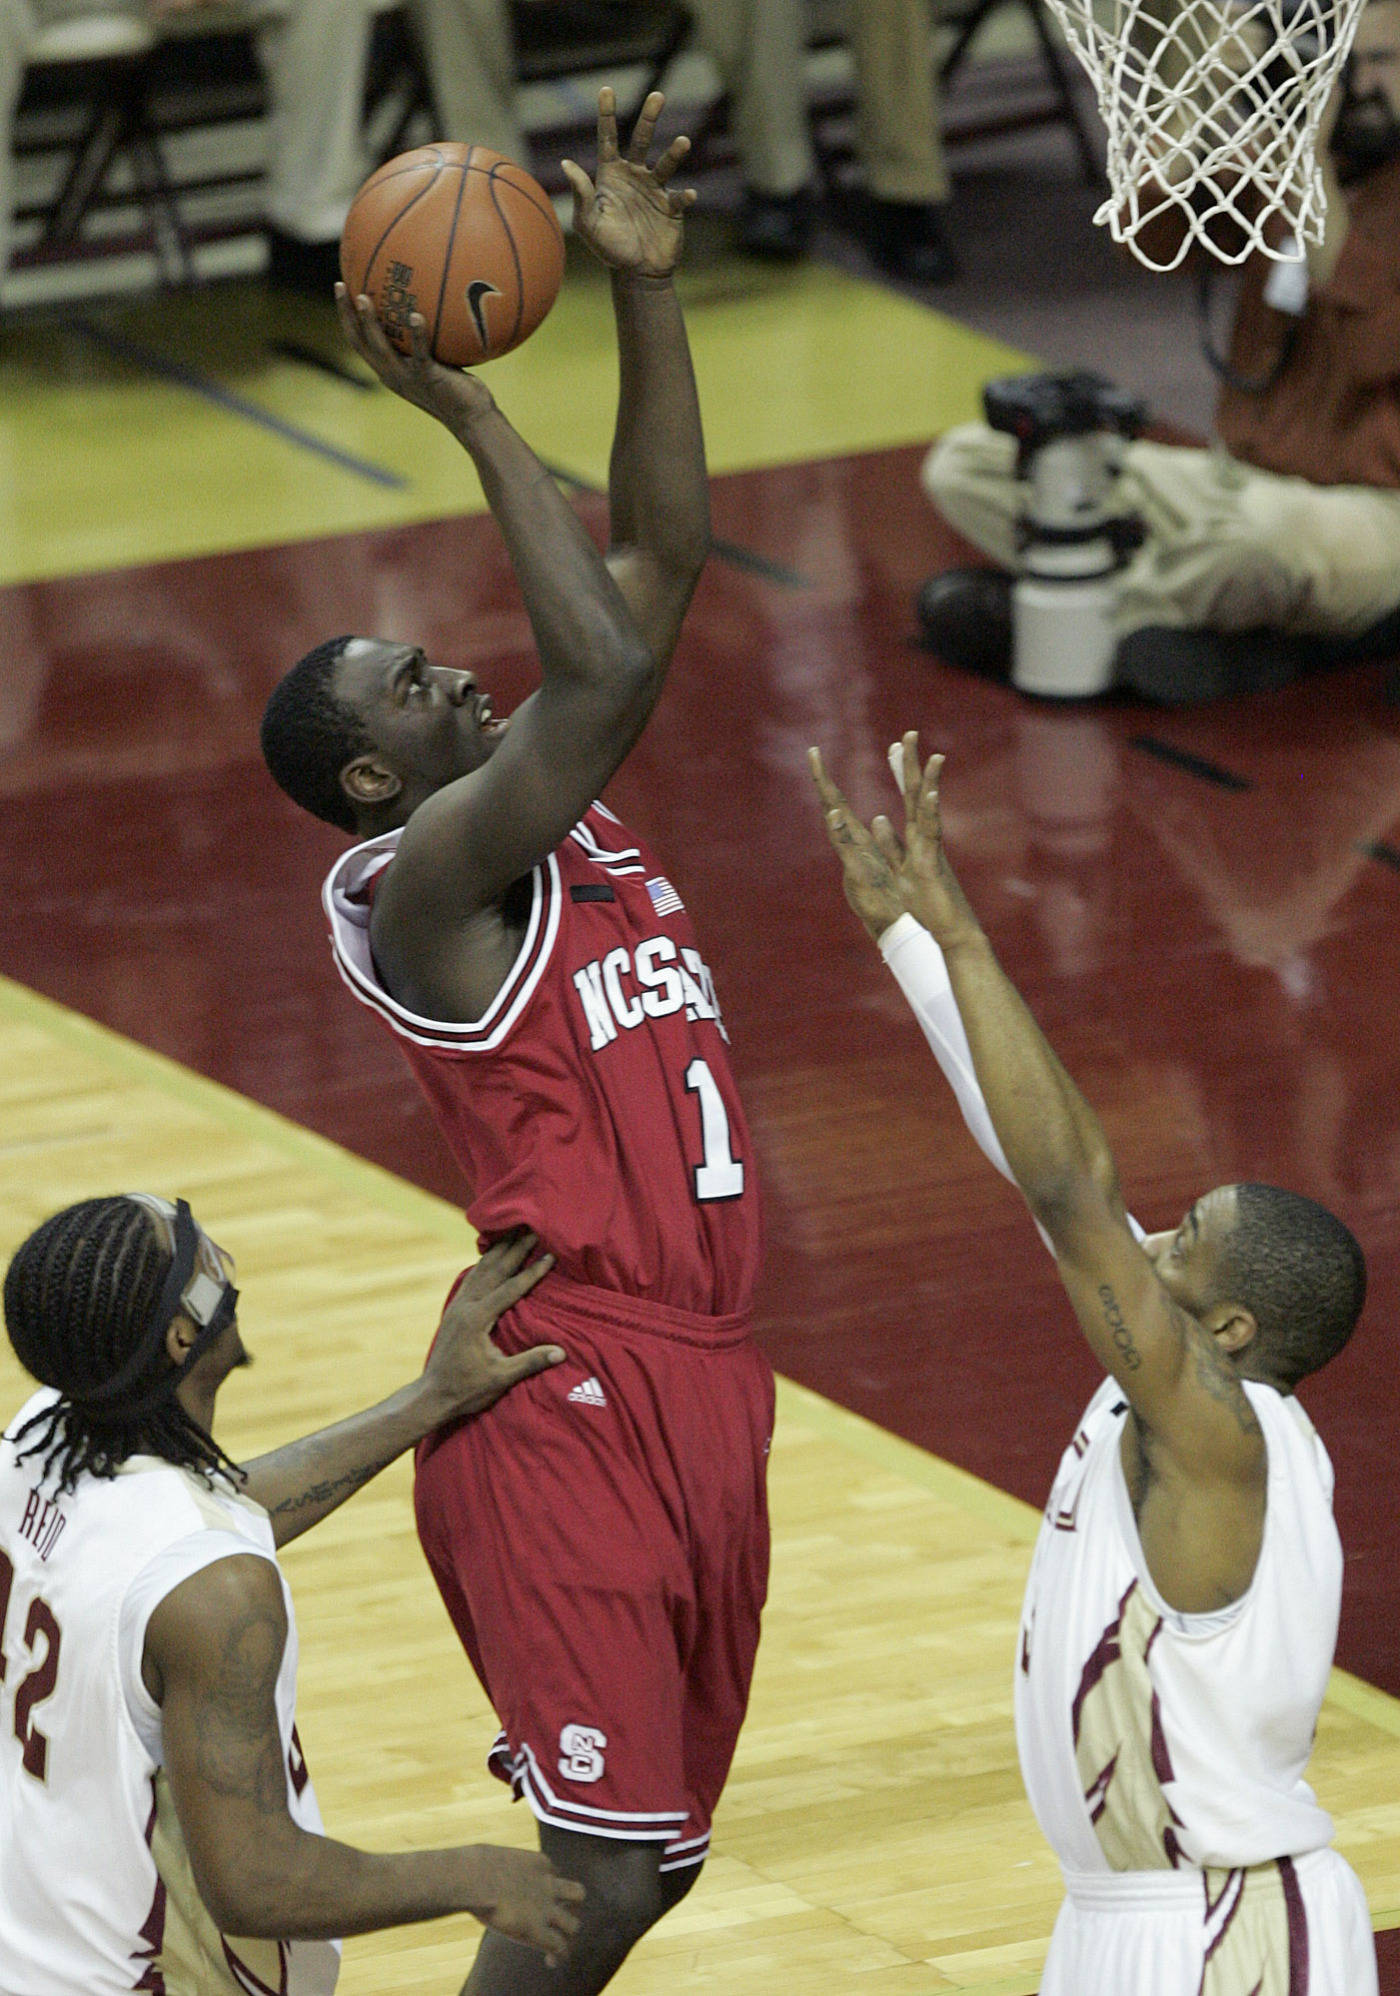 North Carolina State's J J Hickson shoots and scores past Florida State defenders Ryan Reid, left and Isaiah Swann in the first half of a college basketball game on Saturday, Jan. 26, 2008 in Tallahassee, Fla.